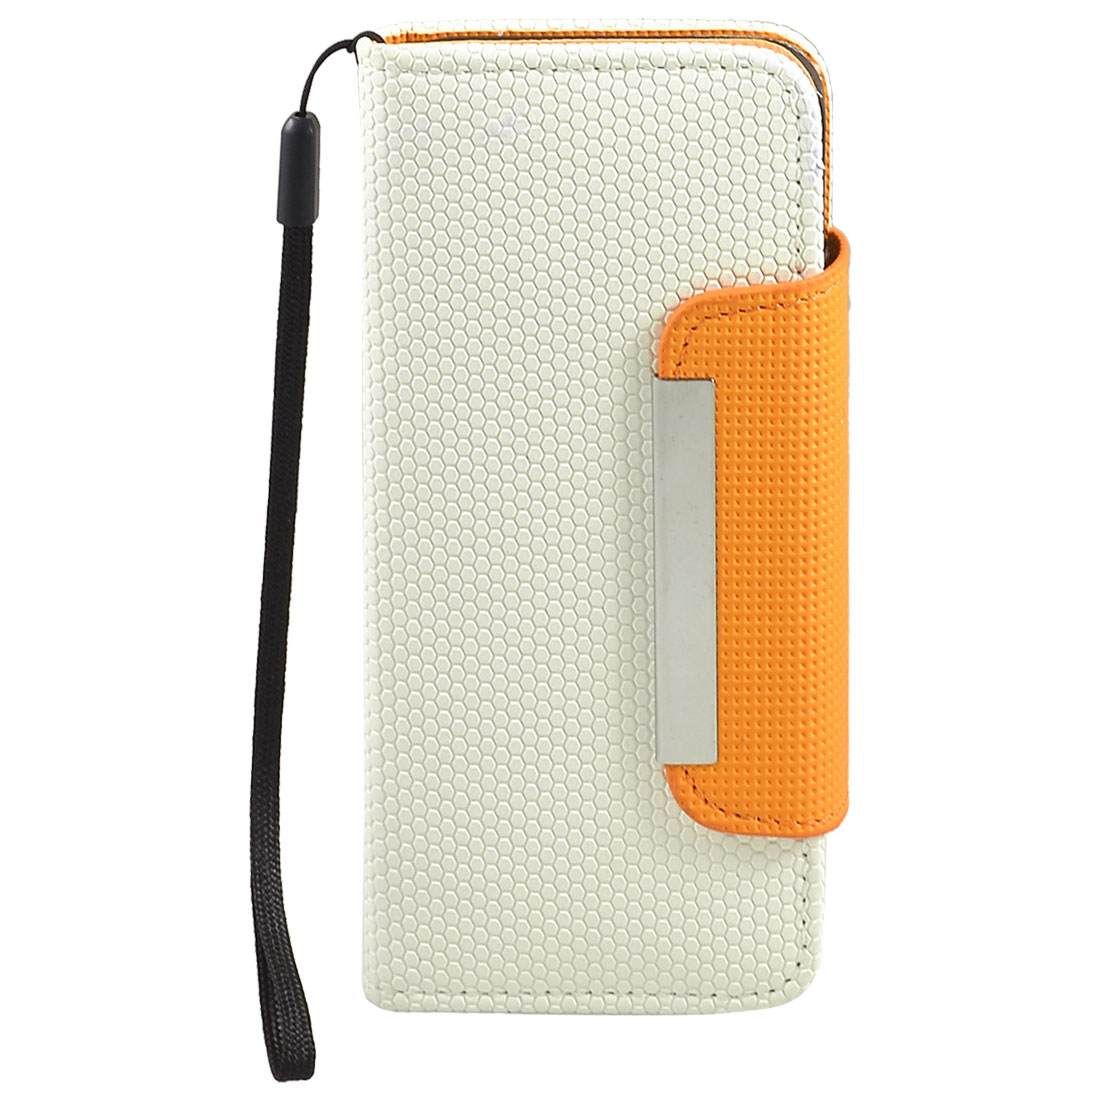 White Textured Hex Pattern Faux Leather Case for iPhone 5 5G